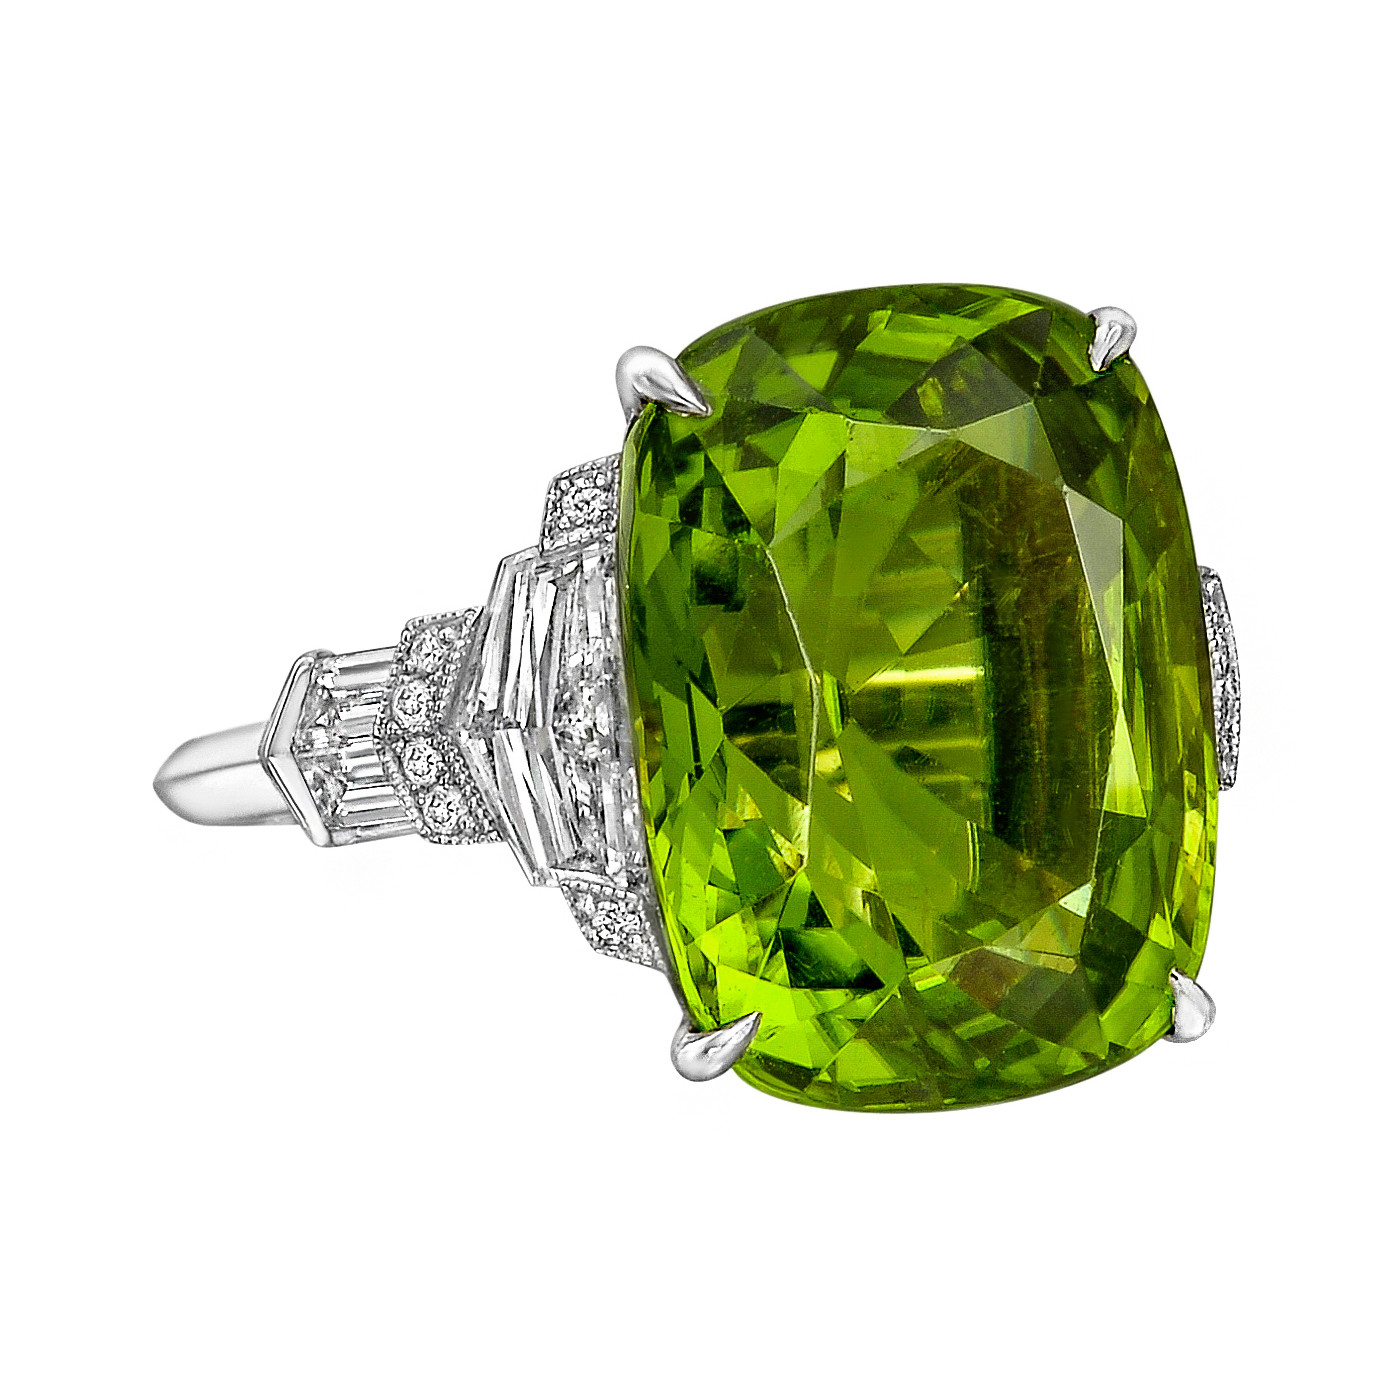 13.53ct Peridot & Diamond Cocktail Ring